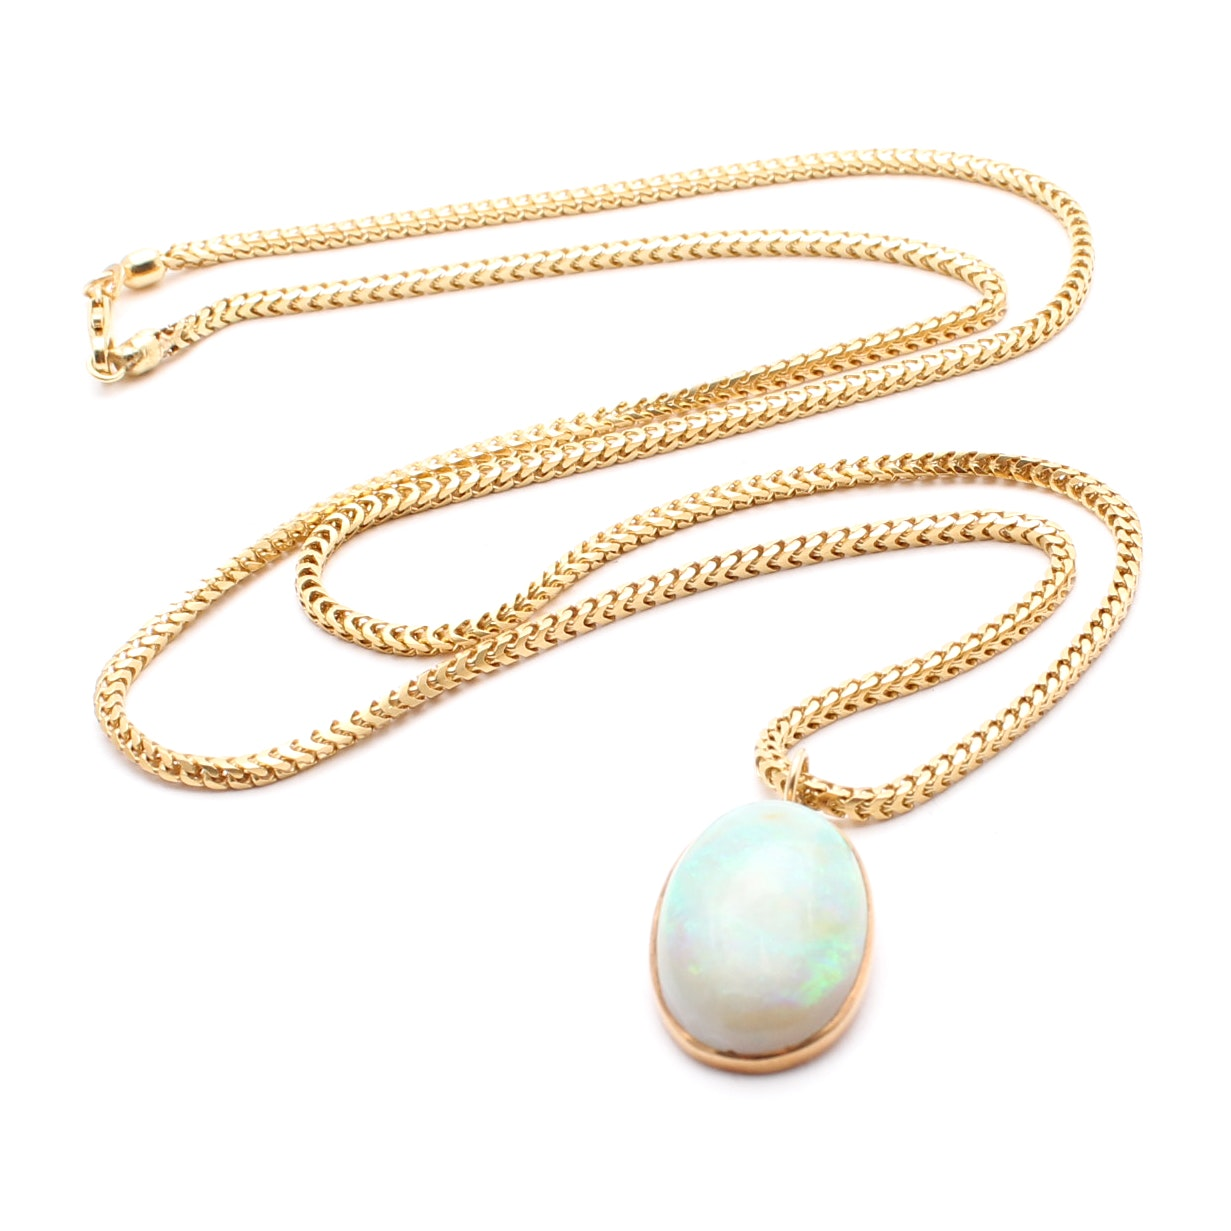 18K Yellow Gold Necklace Chain with 14K Yellow Gold Opal Pendant